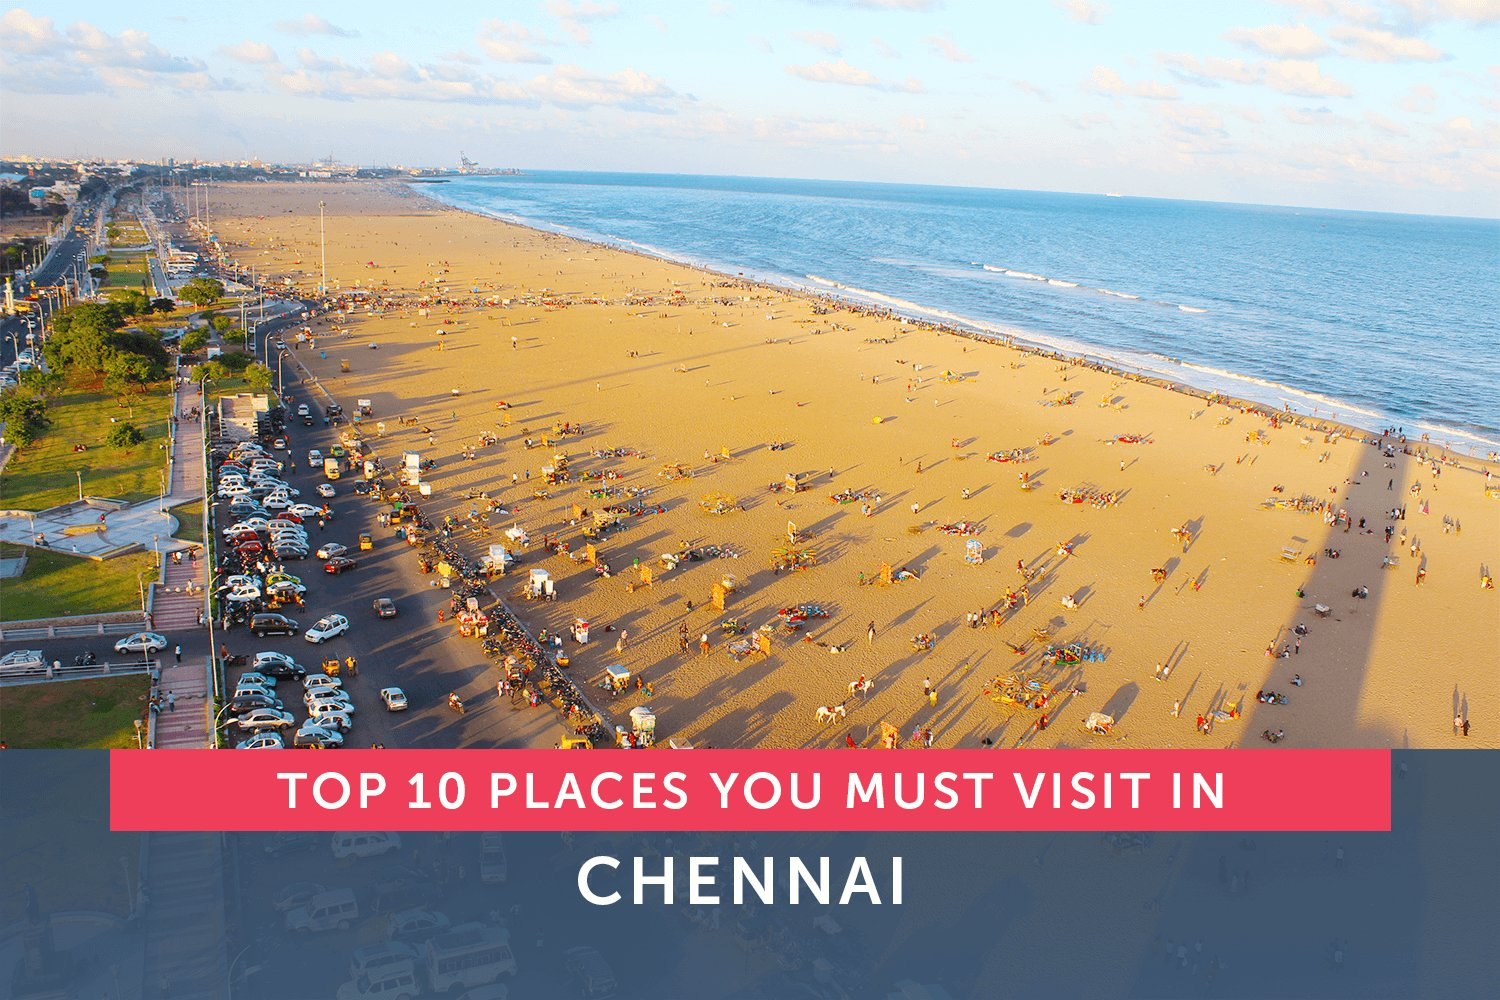 Chennai, Best Places in Chennai, Tourists Places in Chennai, Best Tourists Spots in Chennai, 10 Best Places in Chennai, Top 10 Best Places in Chennai, Places to visit in Chennai, Mahabalipuram, Vadapalani Murugan Temple, Muttukadu Lake, Kabaleeswarar Temple, Vandalur Zoo, Marina Beach, Parthasarathy Swamy Temple, Krishna's Butterball, Birla Planetarium, VGP Golden Beach,